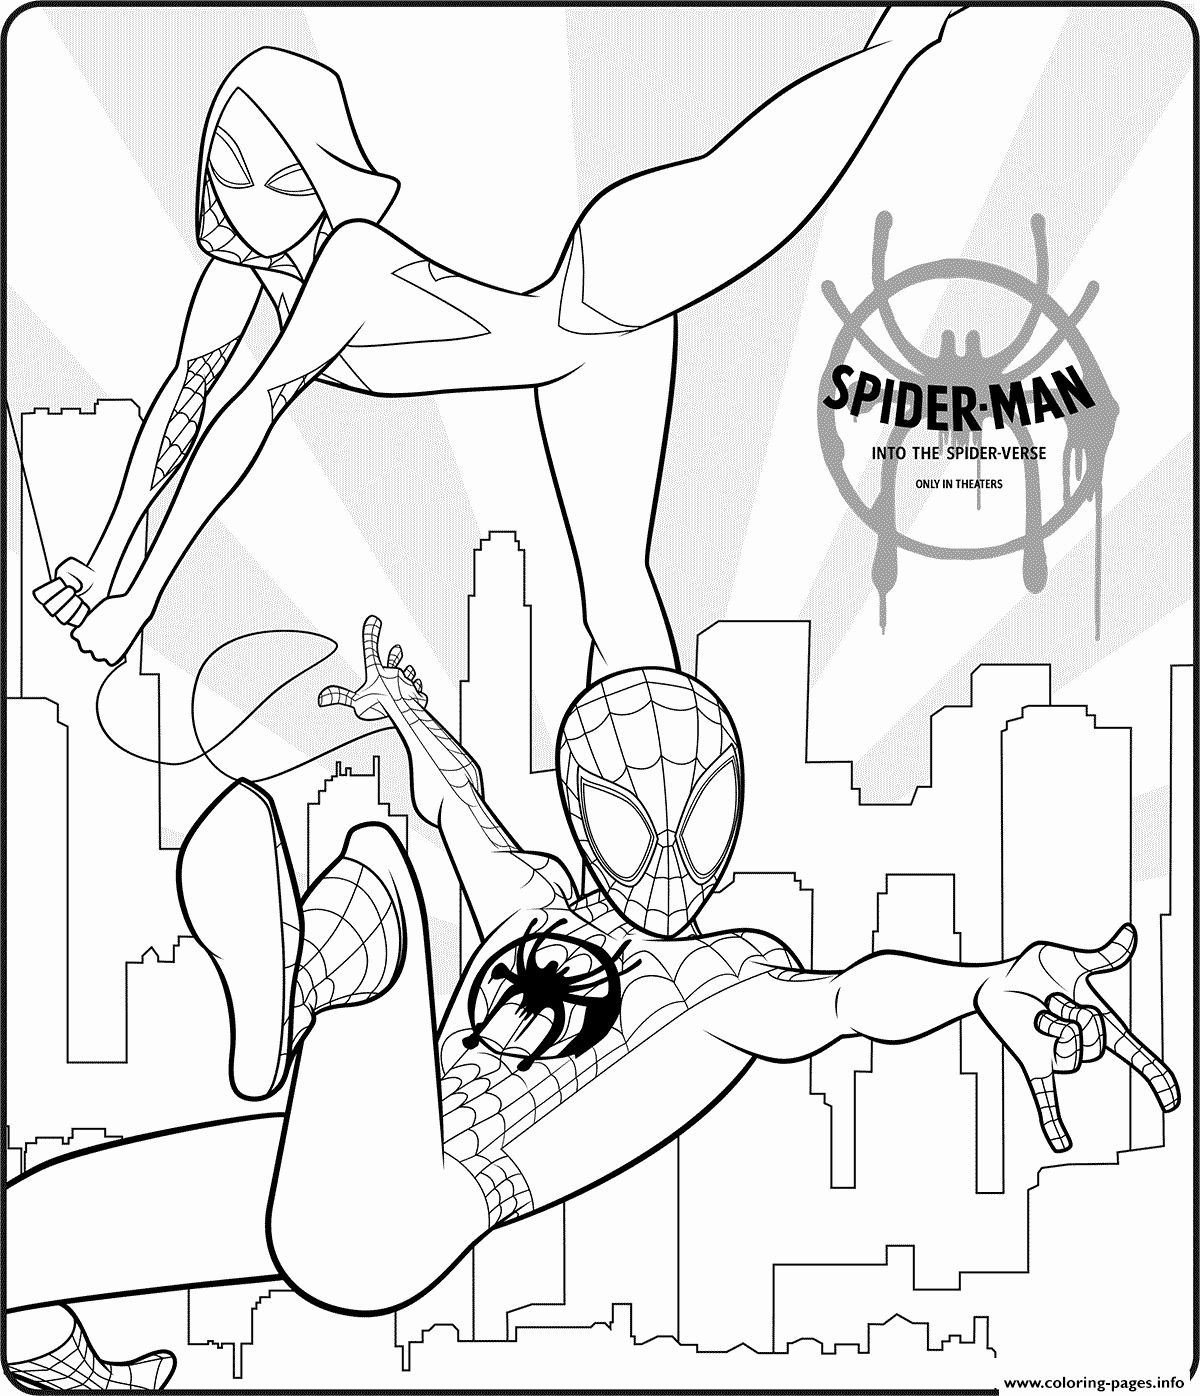 32 Spider Man Into the Spider Verse Coloring Page in 2020